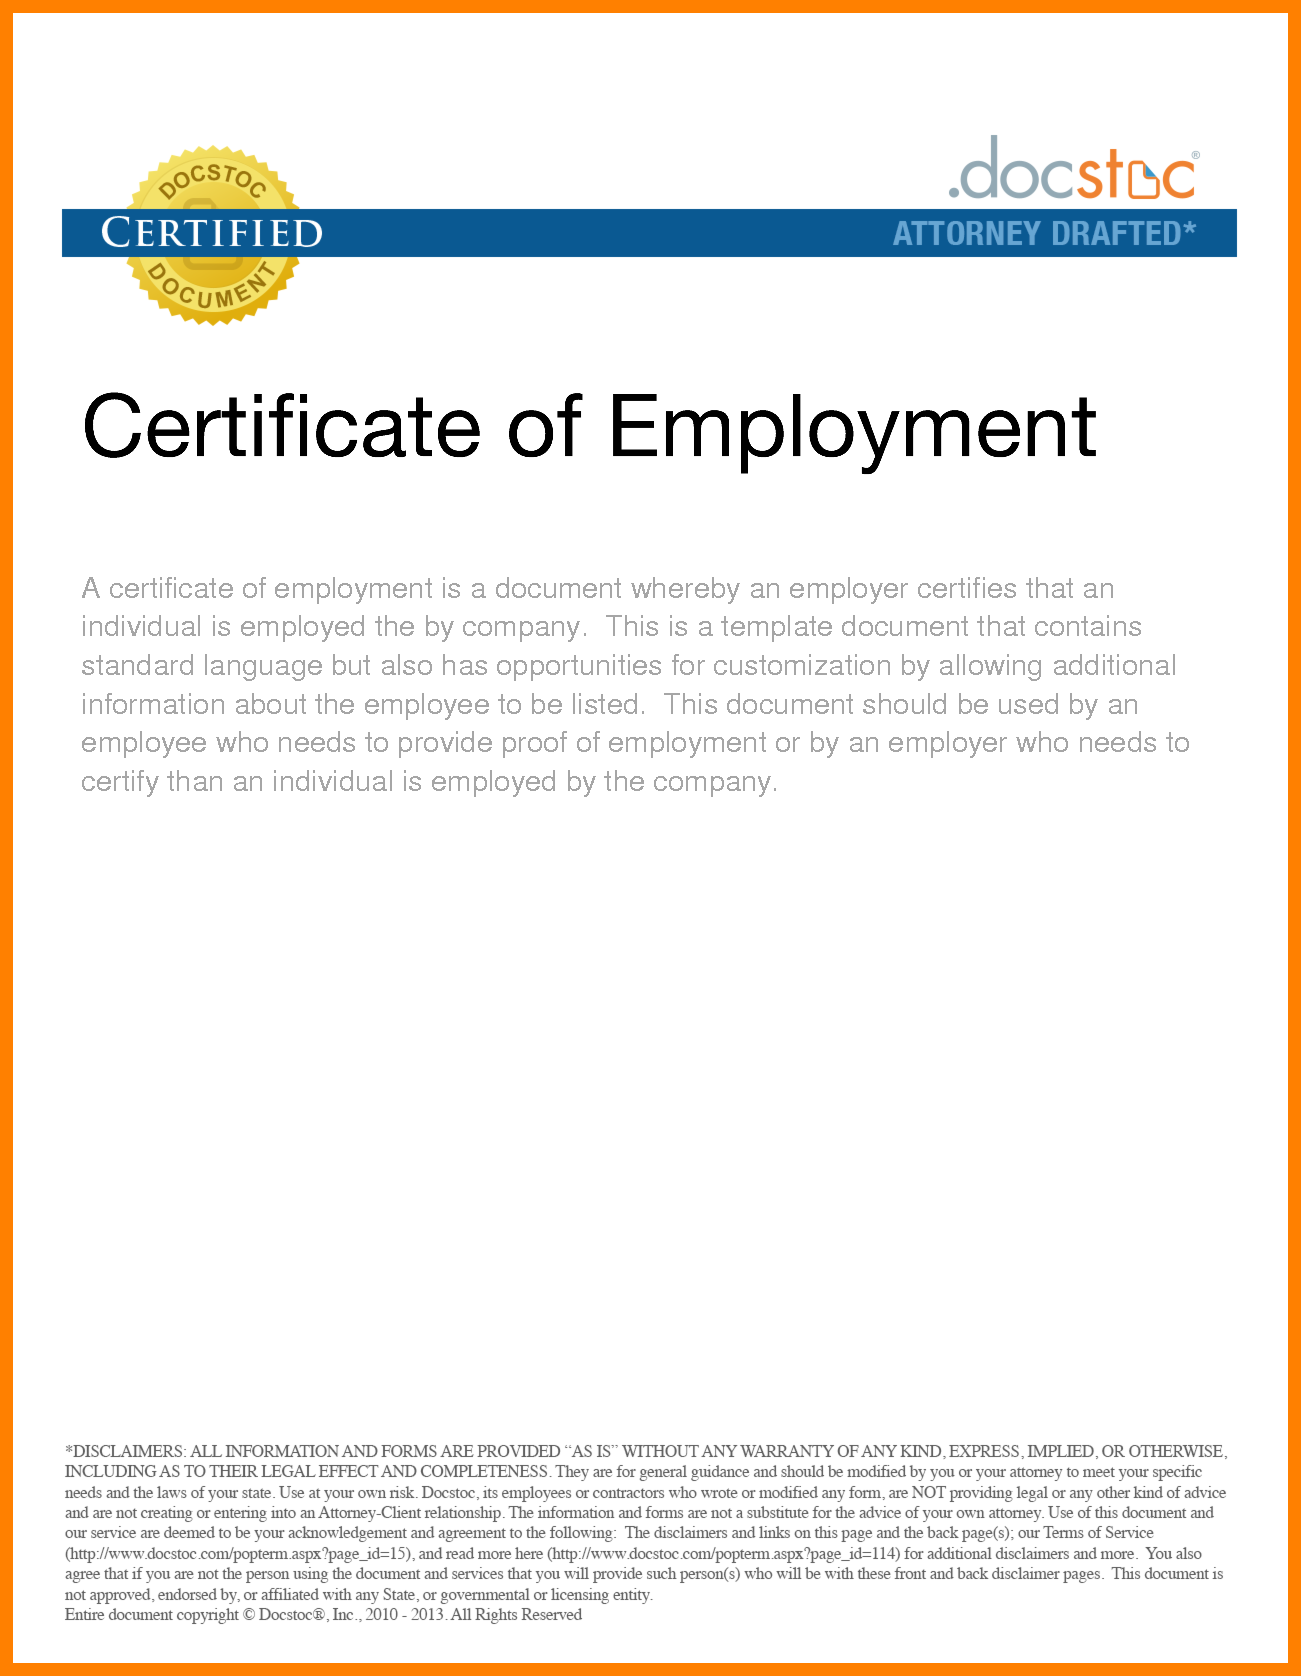 Certification employment letter sample job letteres certificate free certification employment letter sample job letteres certificate free word pdf documents download yelopaper Gallery